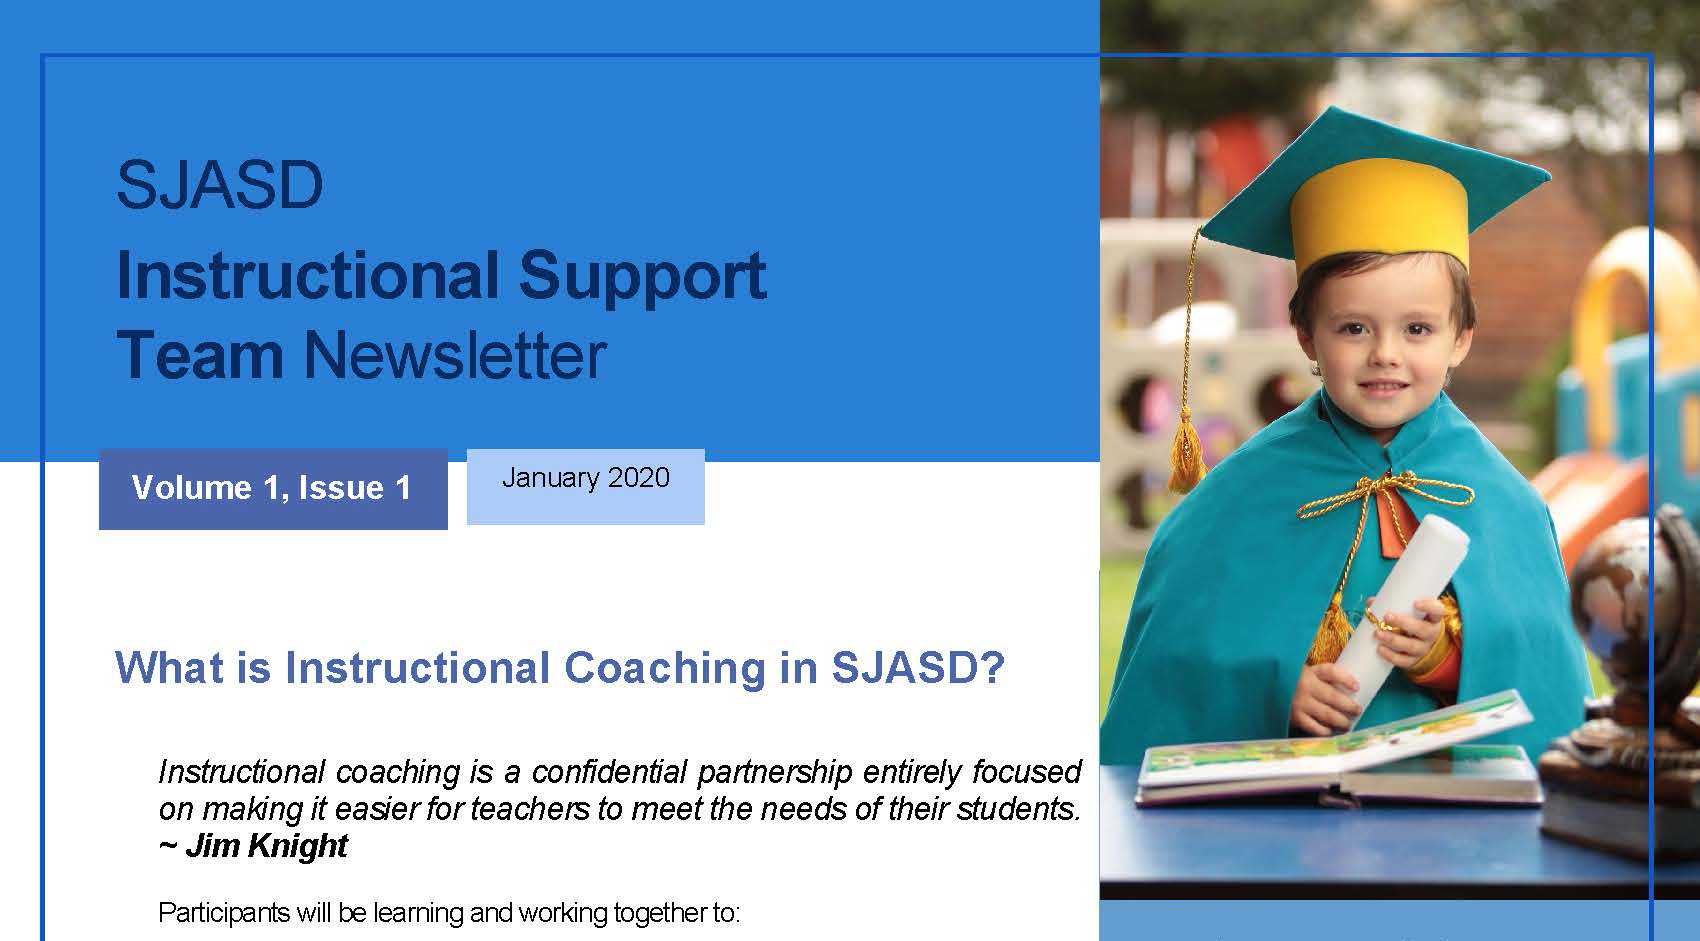 Supporting our teachers with the new Instructional Support Team Newsletter